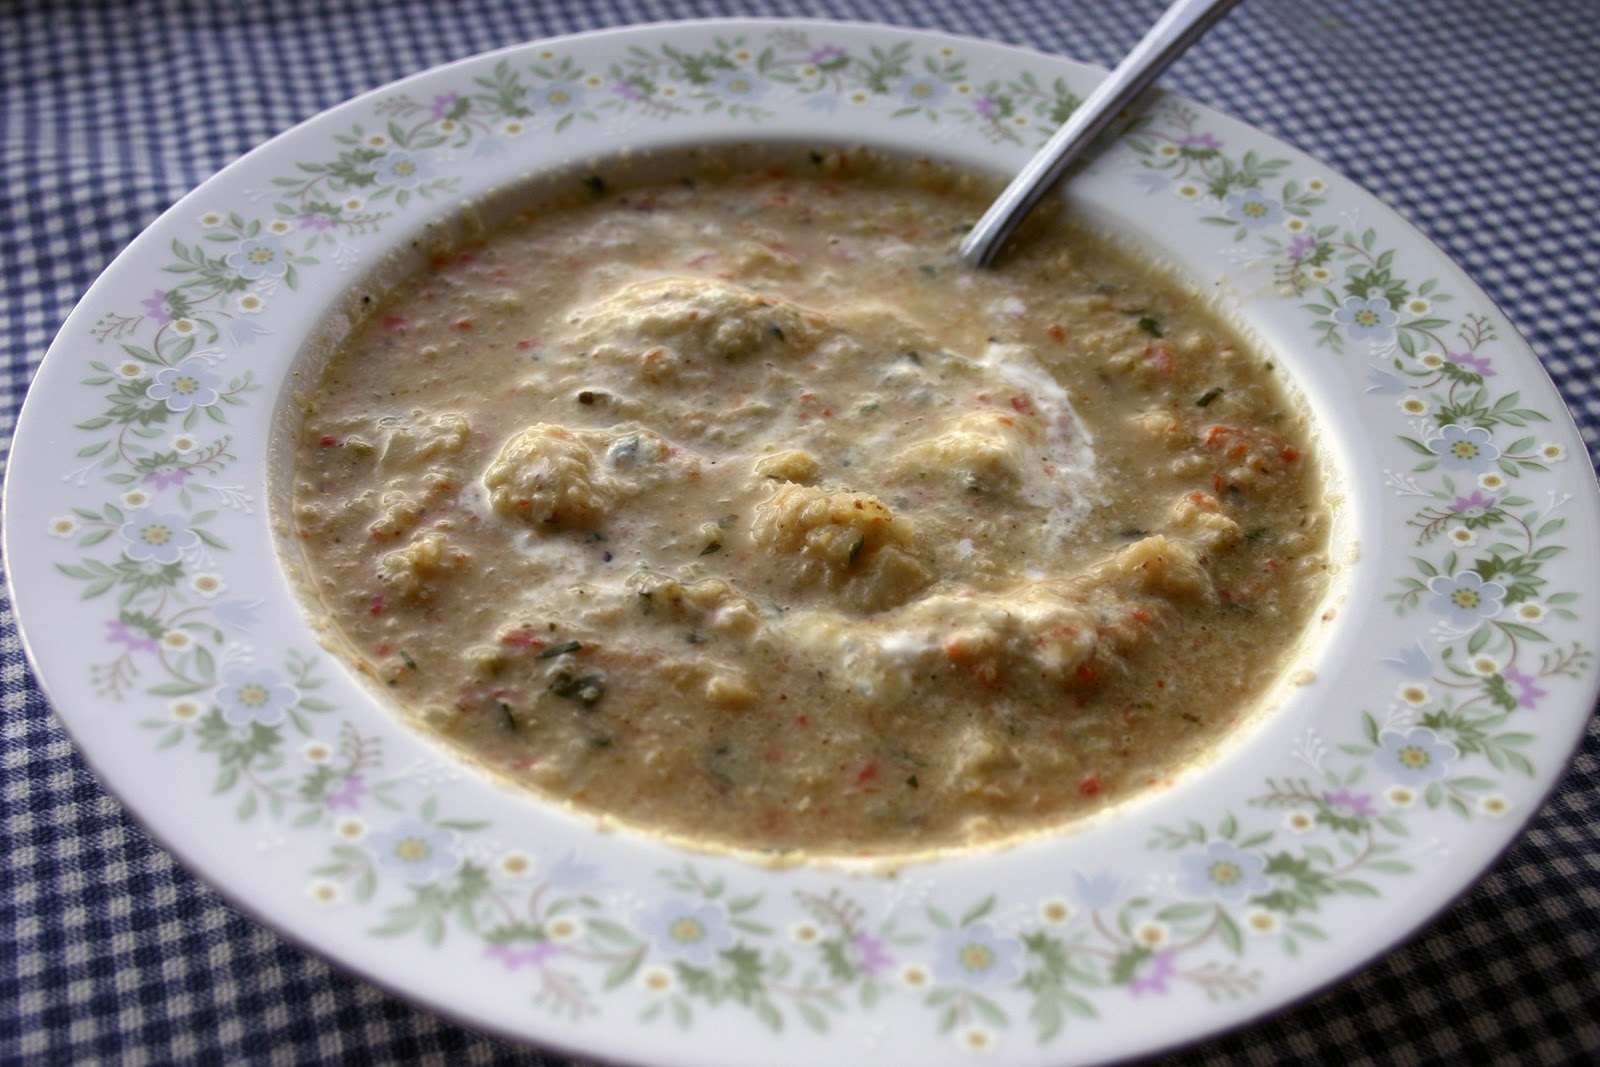 Marvelously Mundane: Spicy Cauliflower Poblano Soup